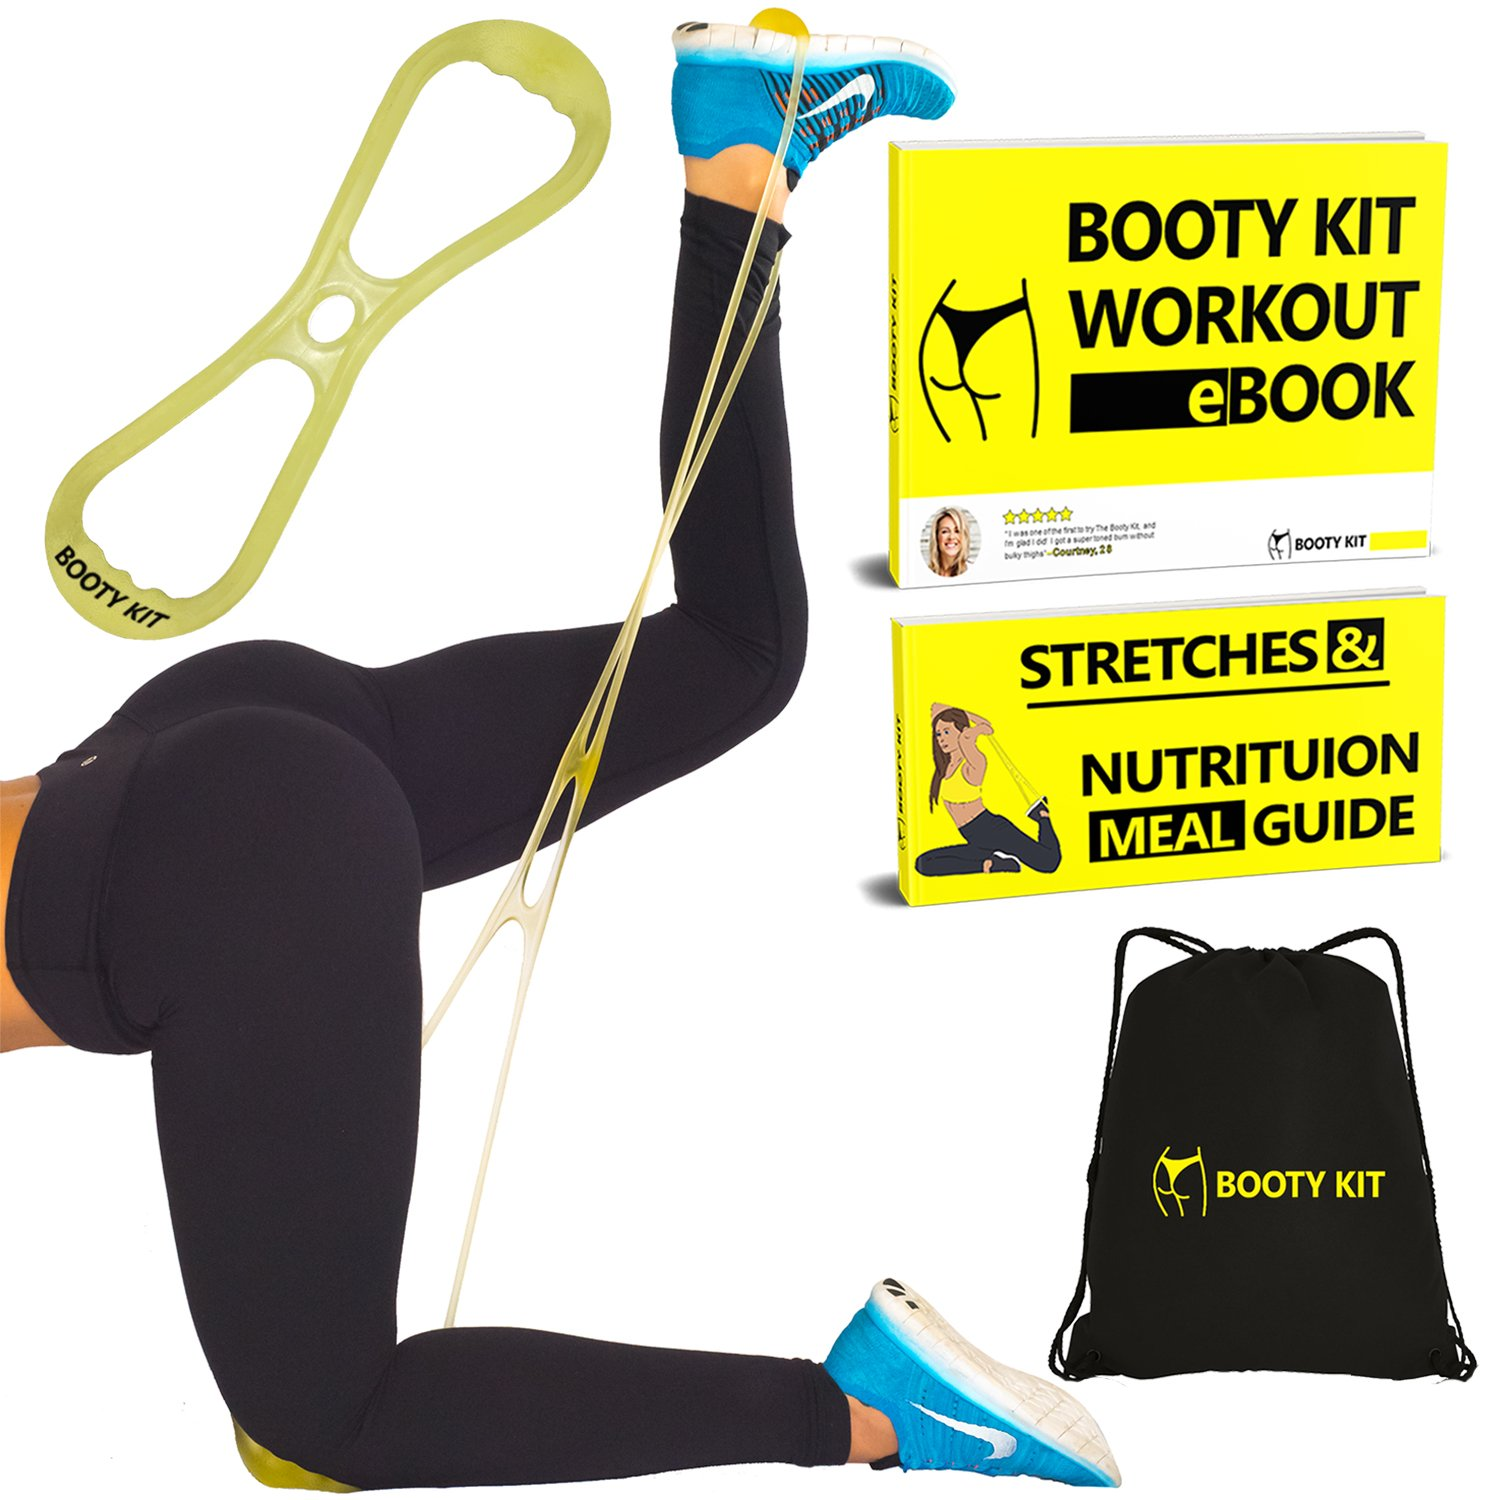 Booty Kit Belt Resistance Training Band Workout System- Targeted Program to Build, Tone & Sculpt A Brazilian Butt Lift. Strong Band Works Glutes & Gets Results- Workout Guide & Gym Bag